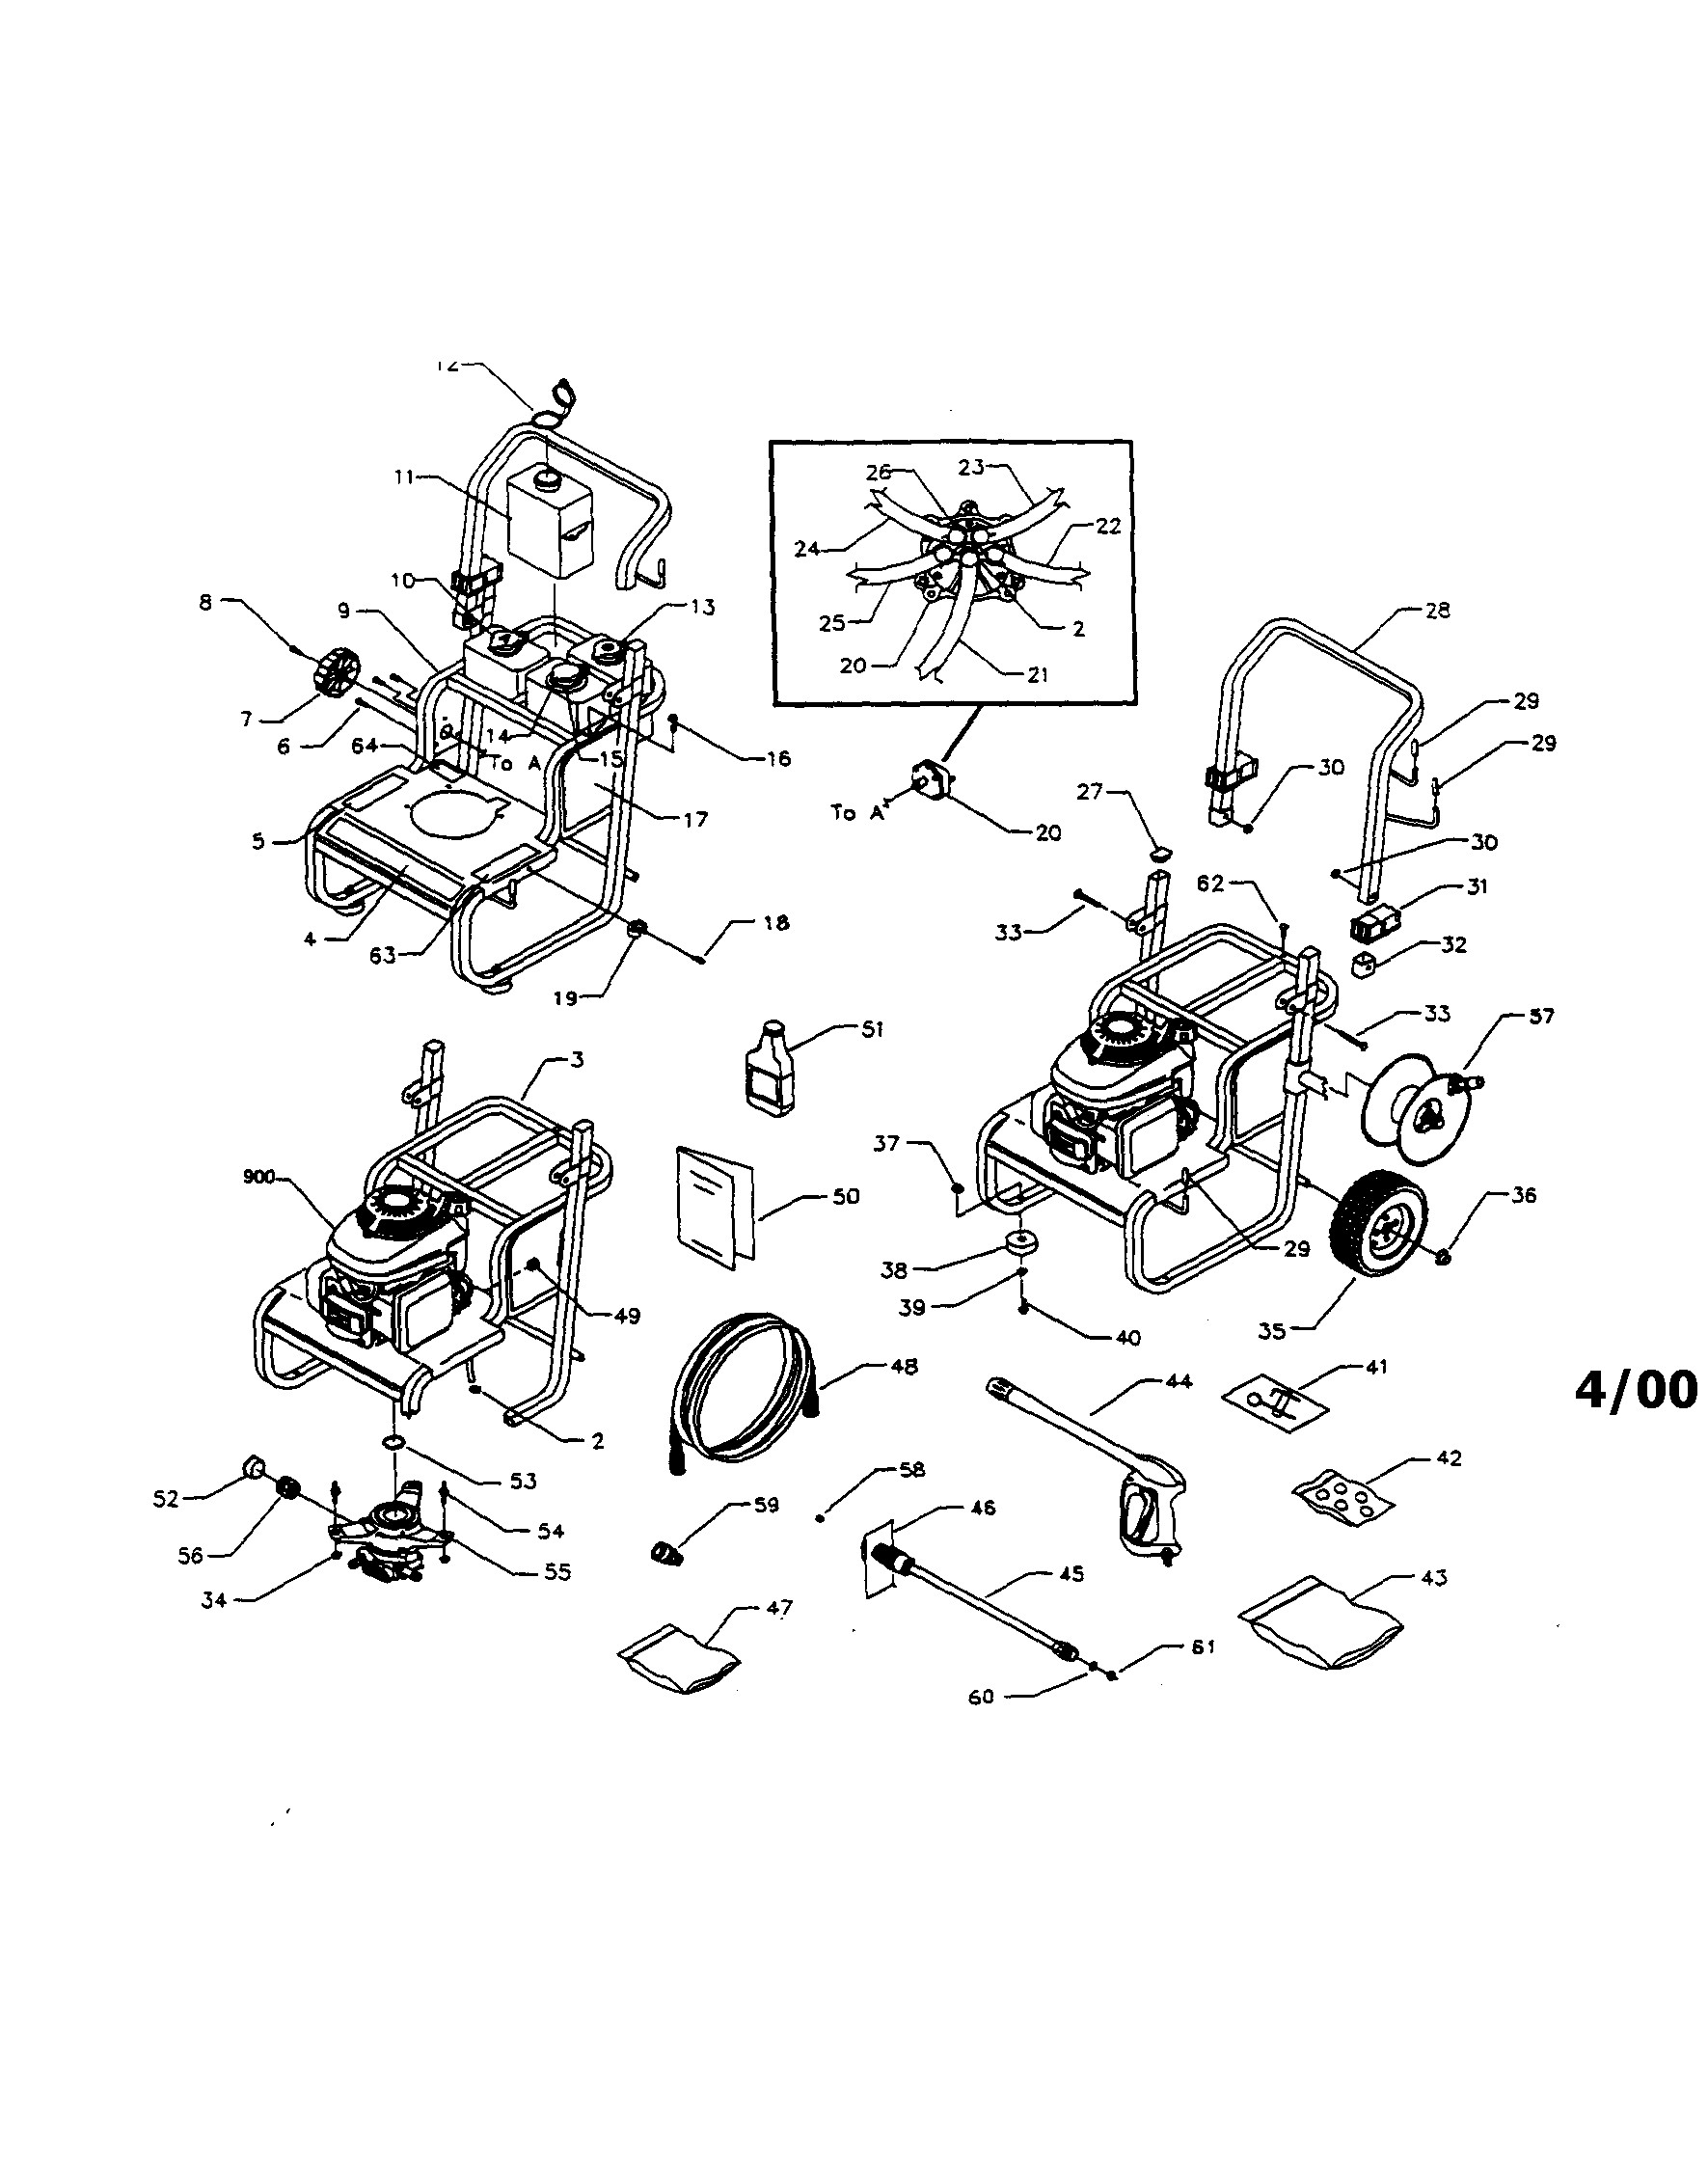 Honda 190 Pressure Washer Schematic